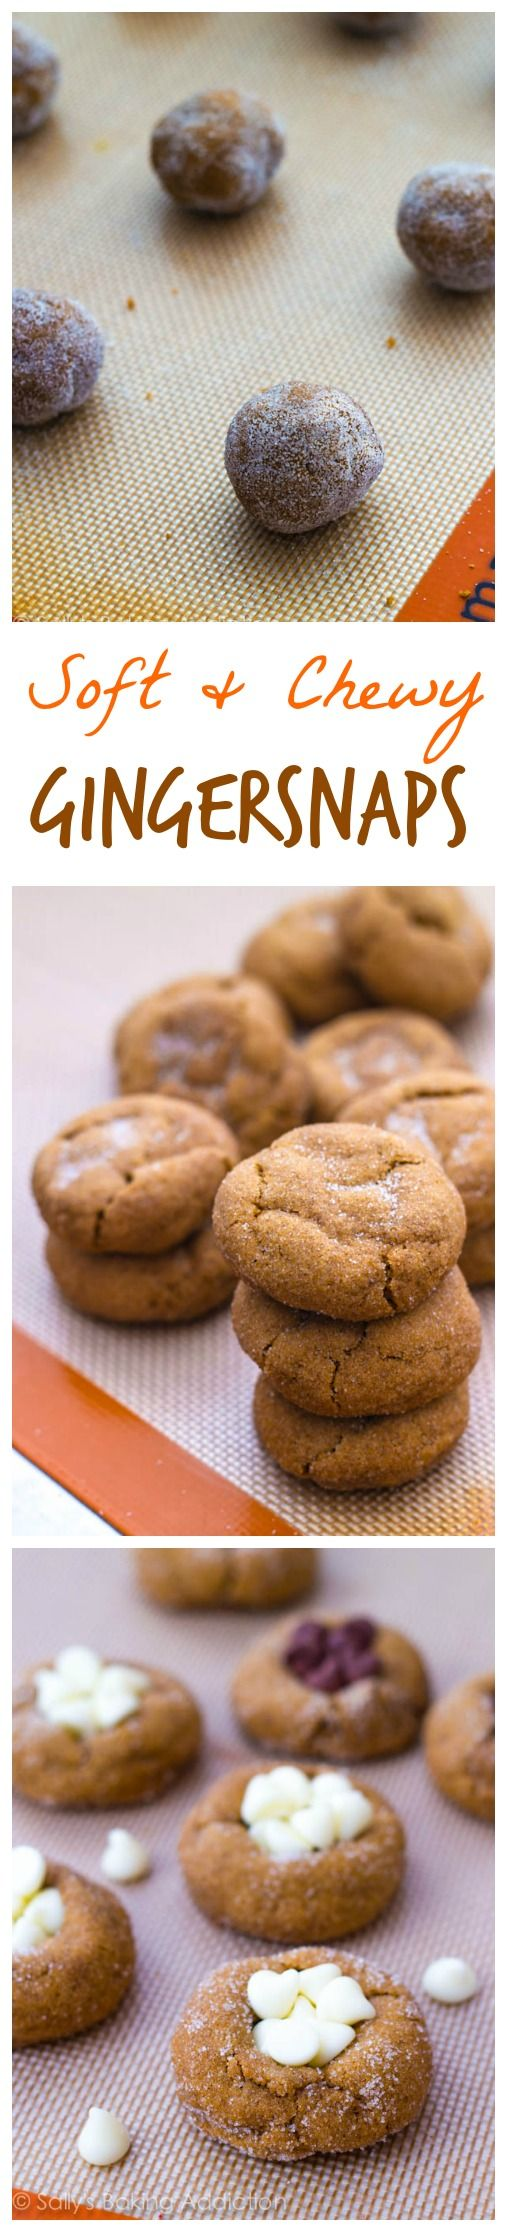 Molasses cookies, Cookies and White chocolate on Pinterest